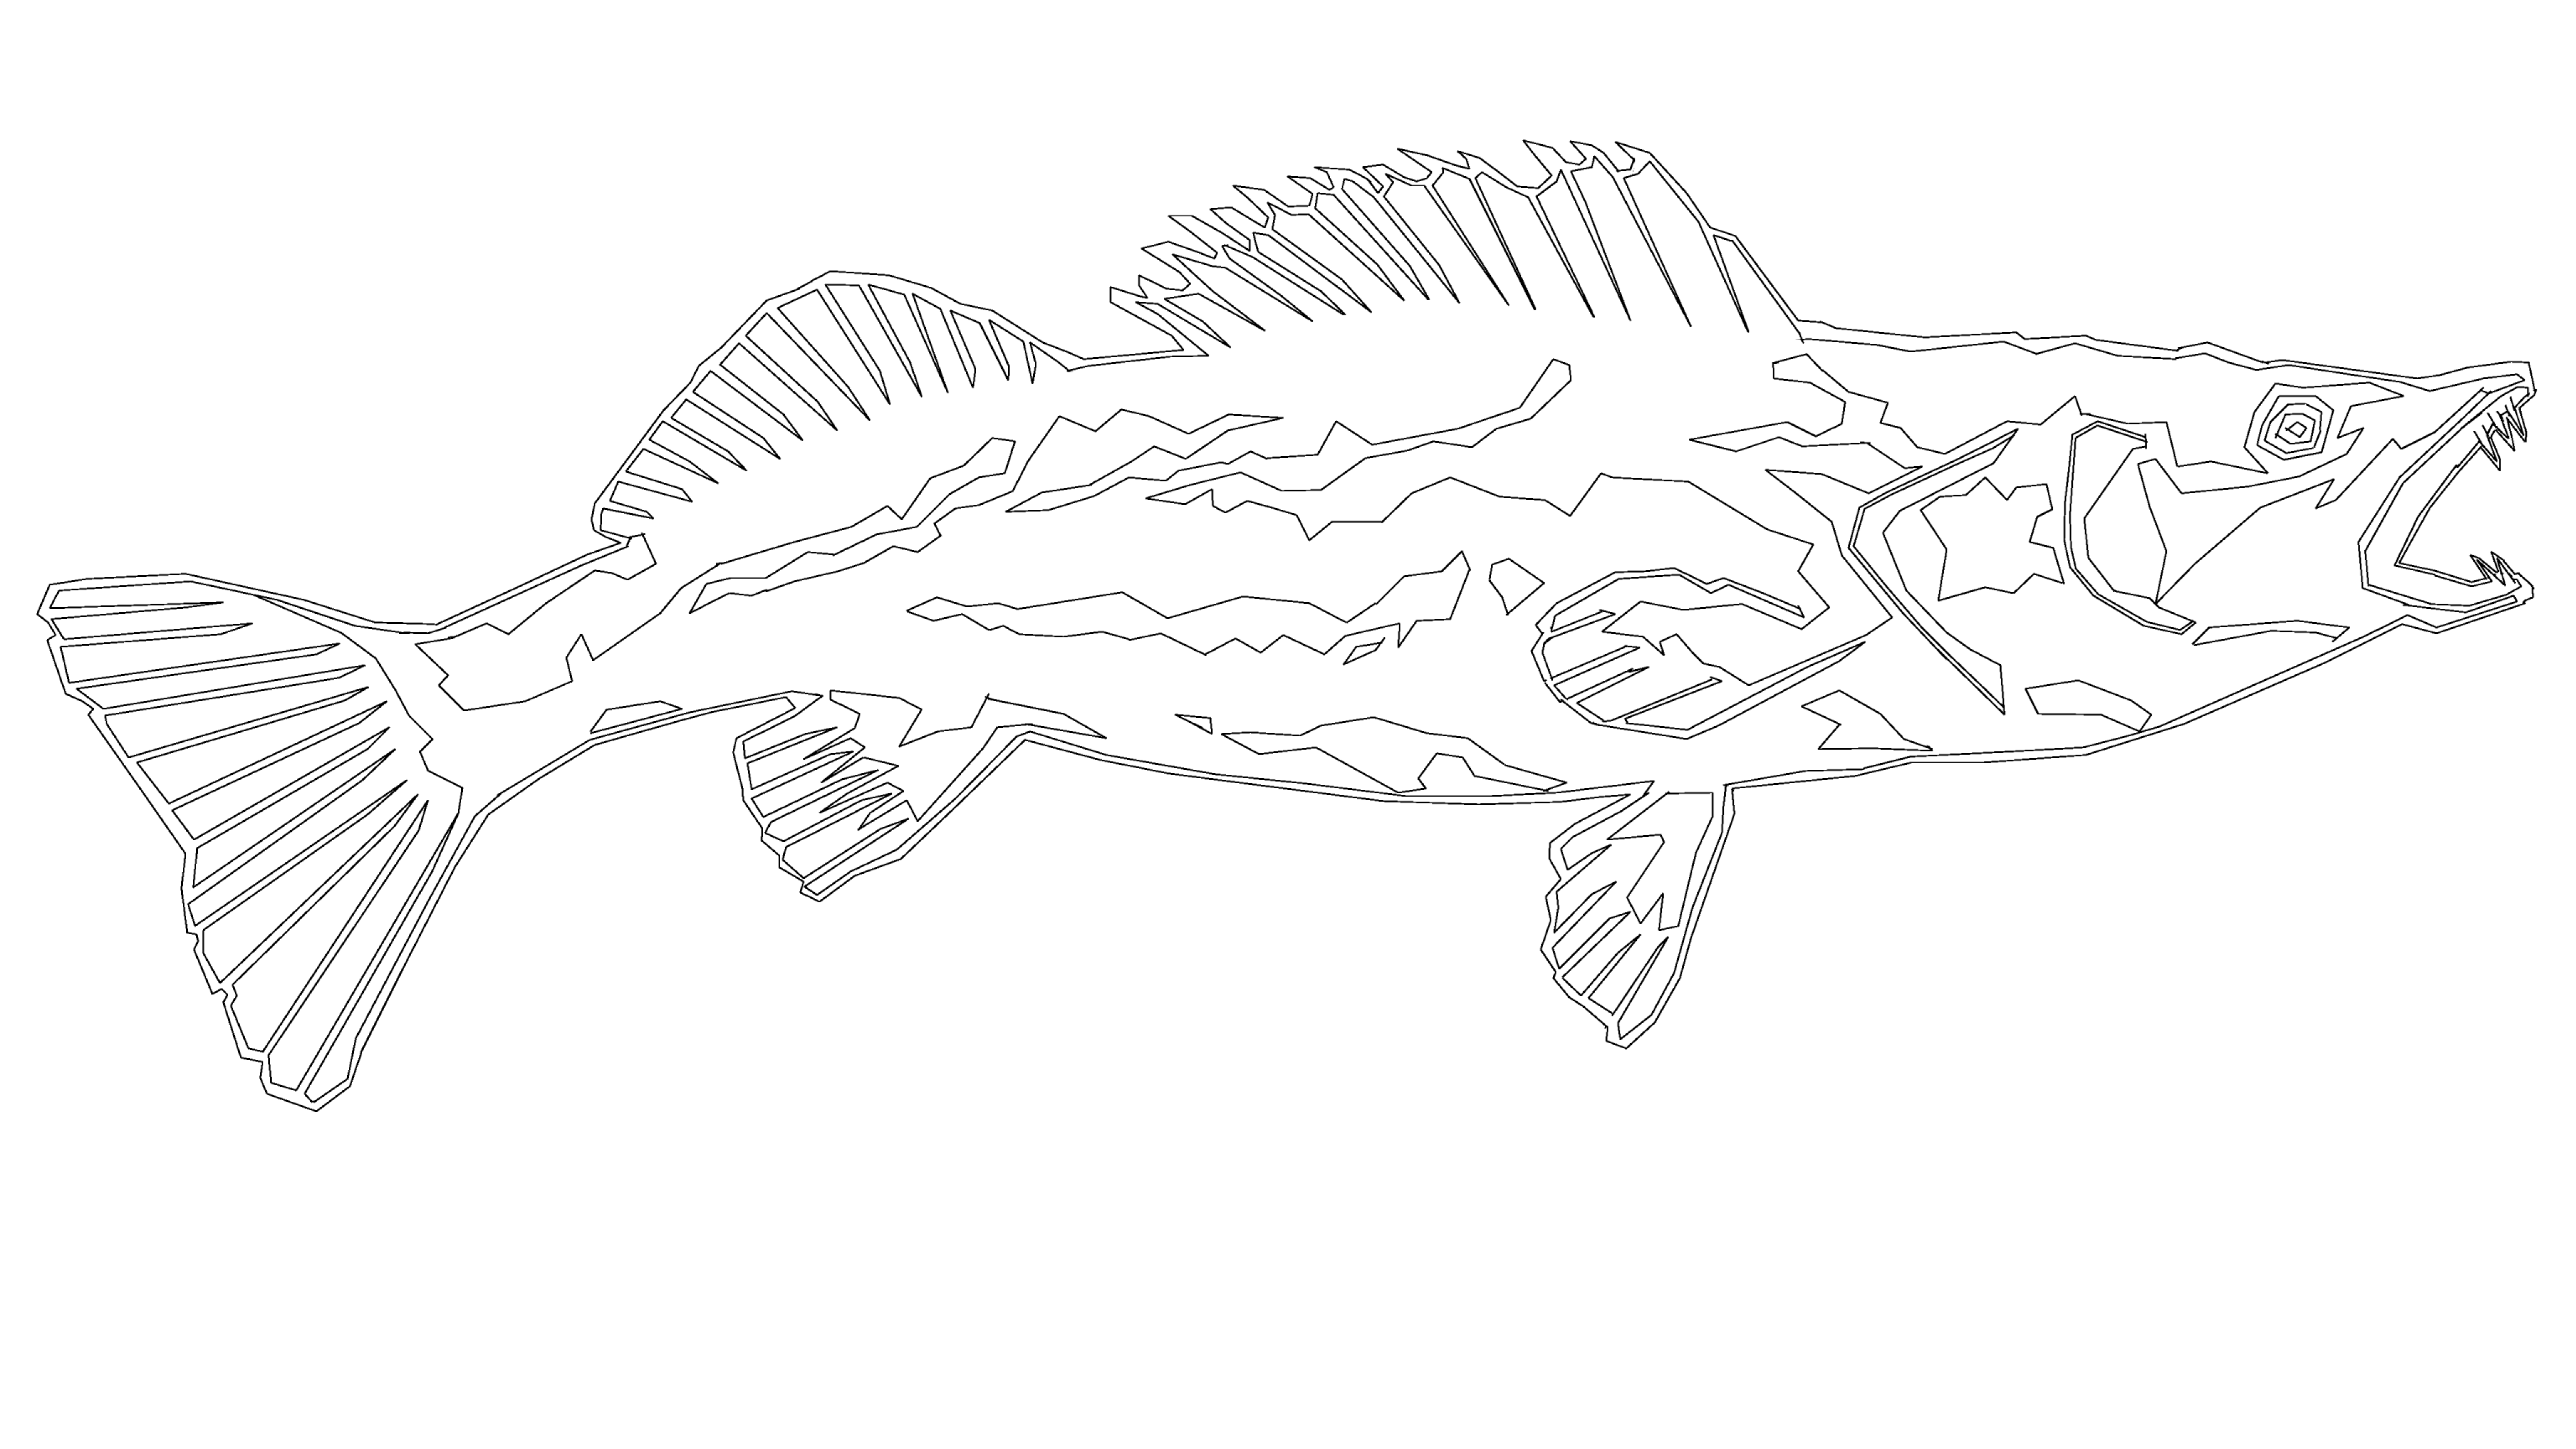 Snook Outline Print